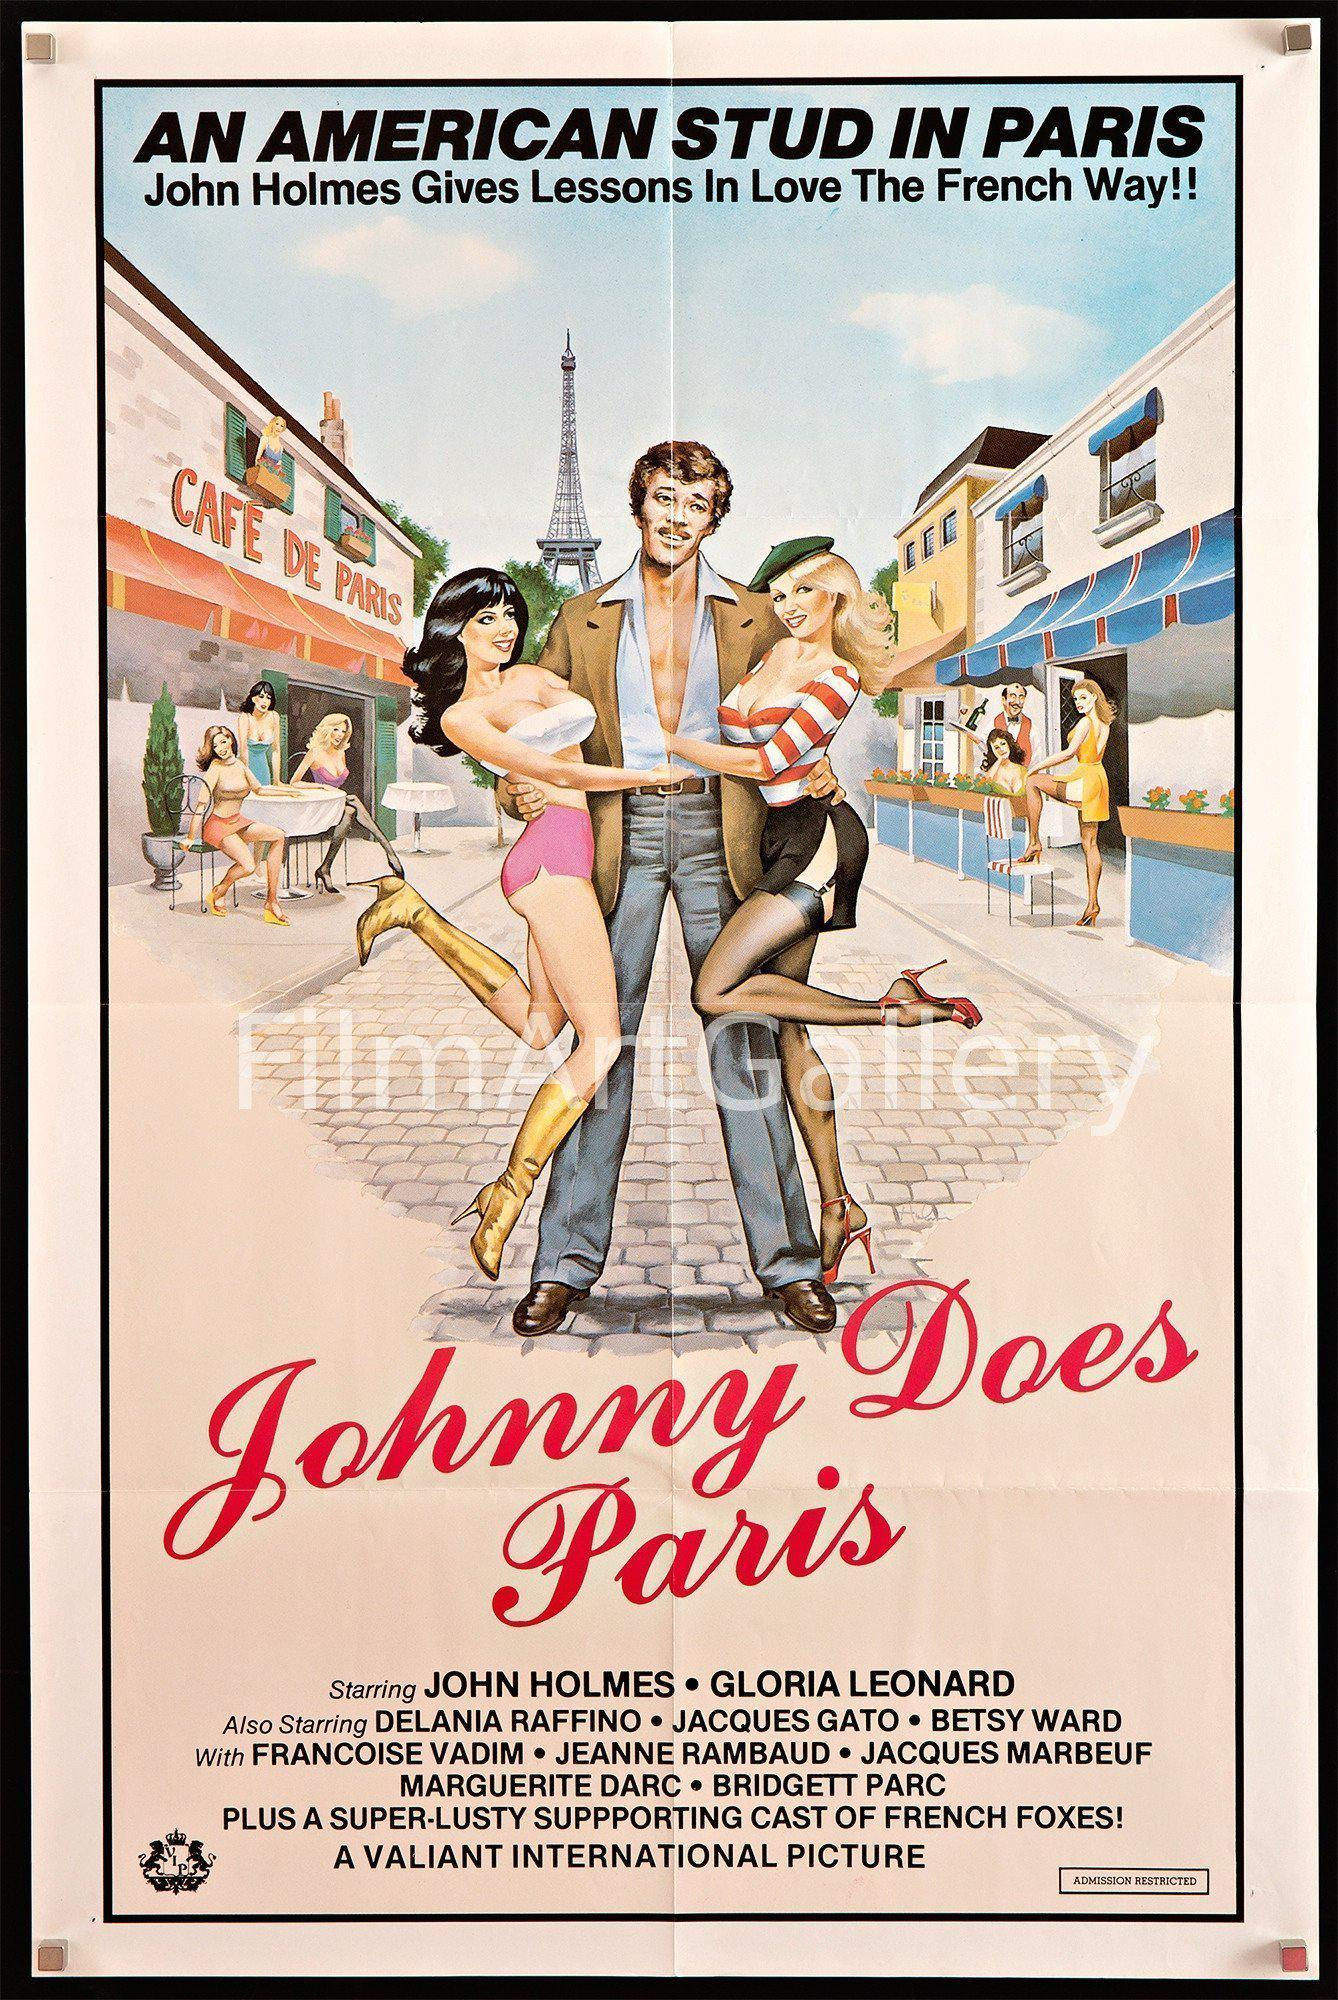 Johnny Does Paris (Extreme Close Up) 1 Sheet (27x41) Original Vintage Movie Poster